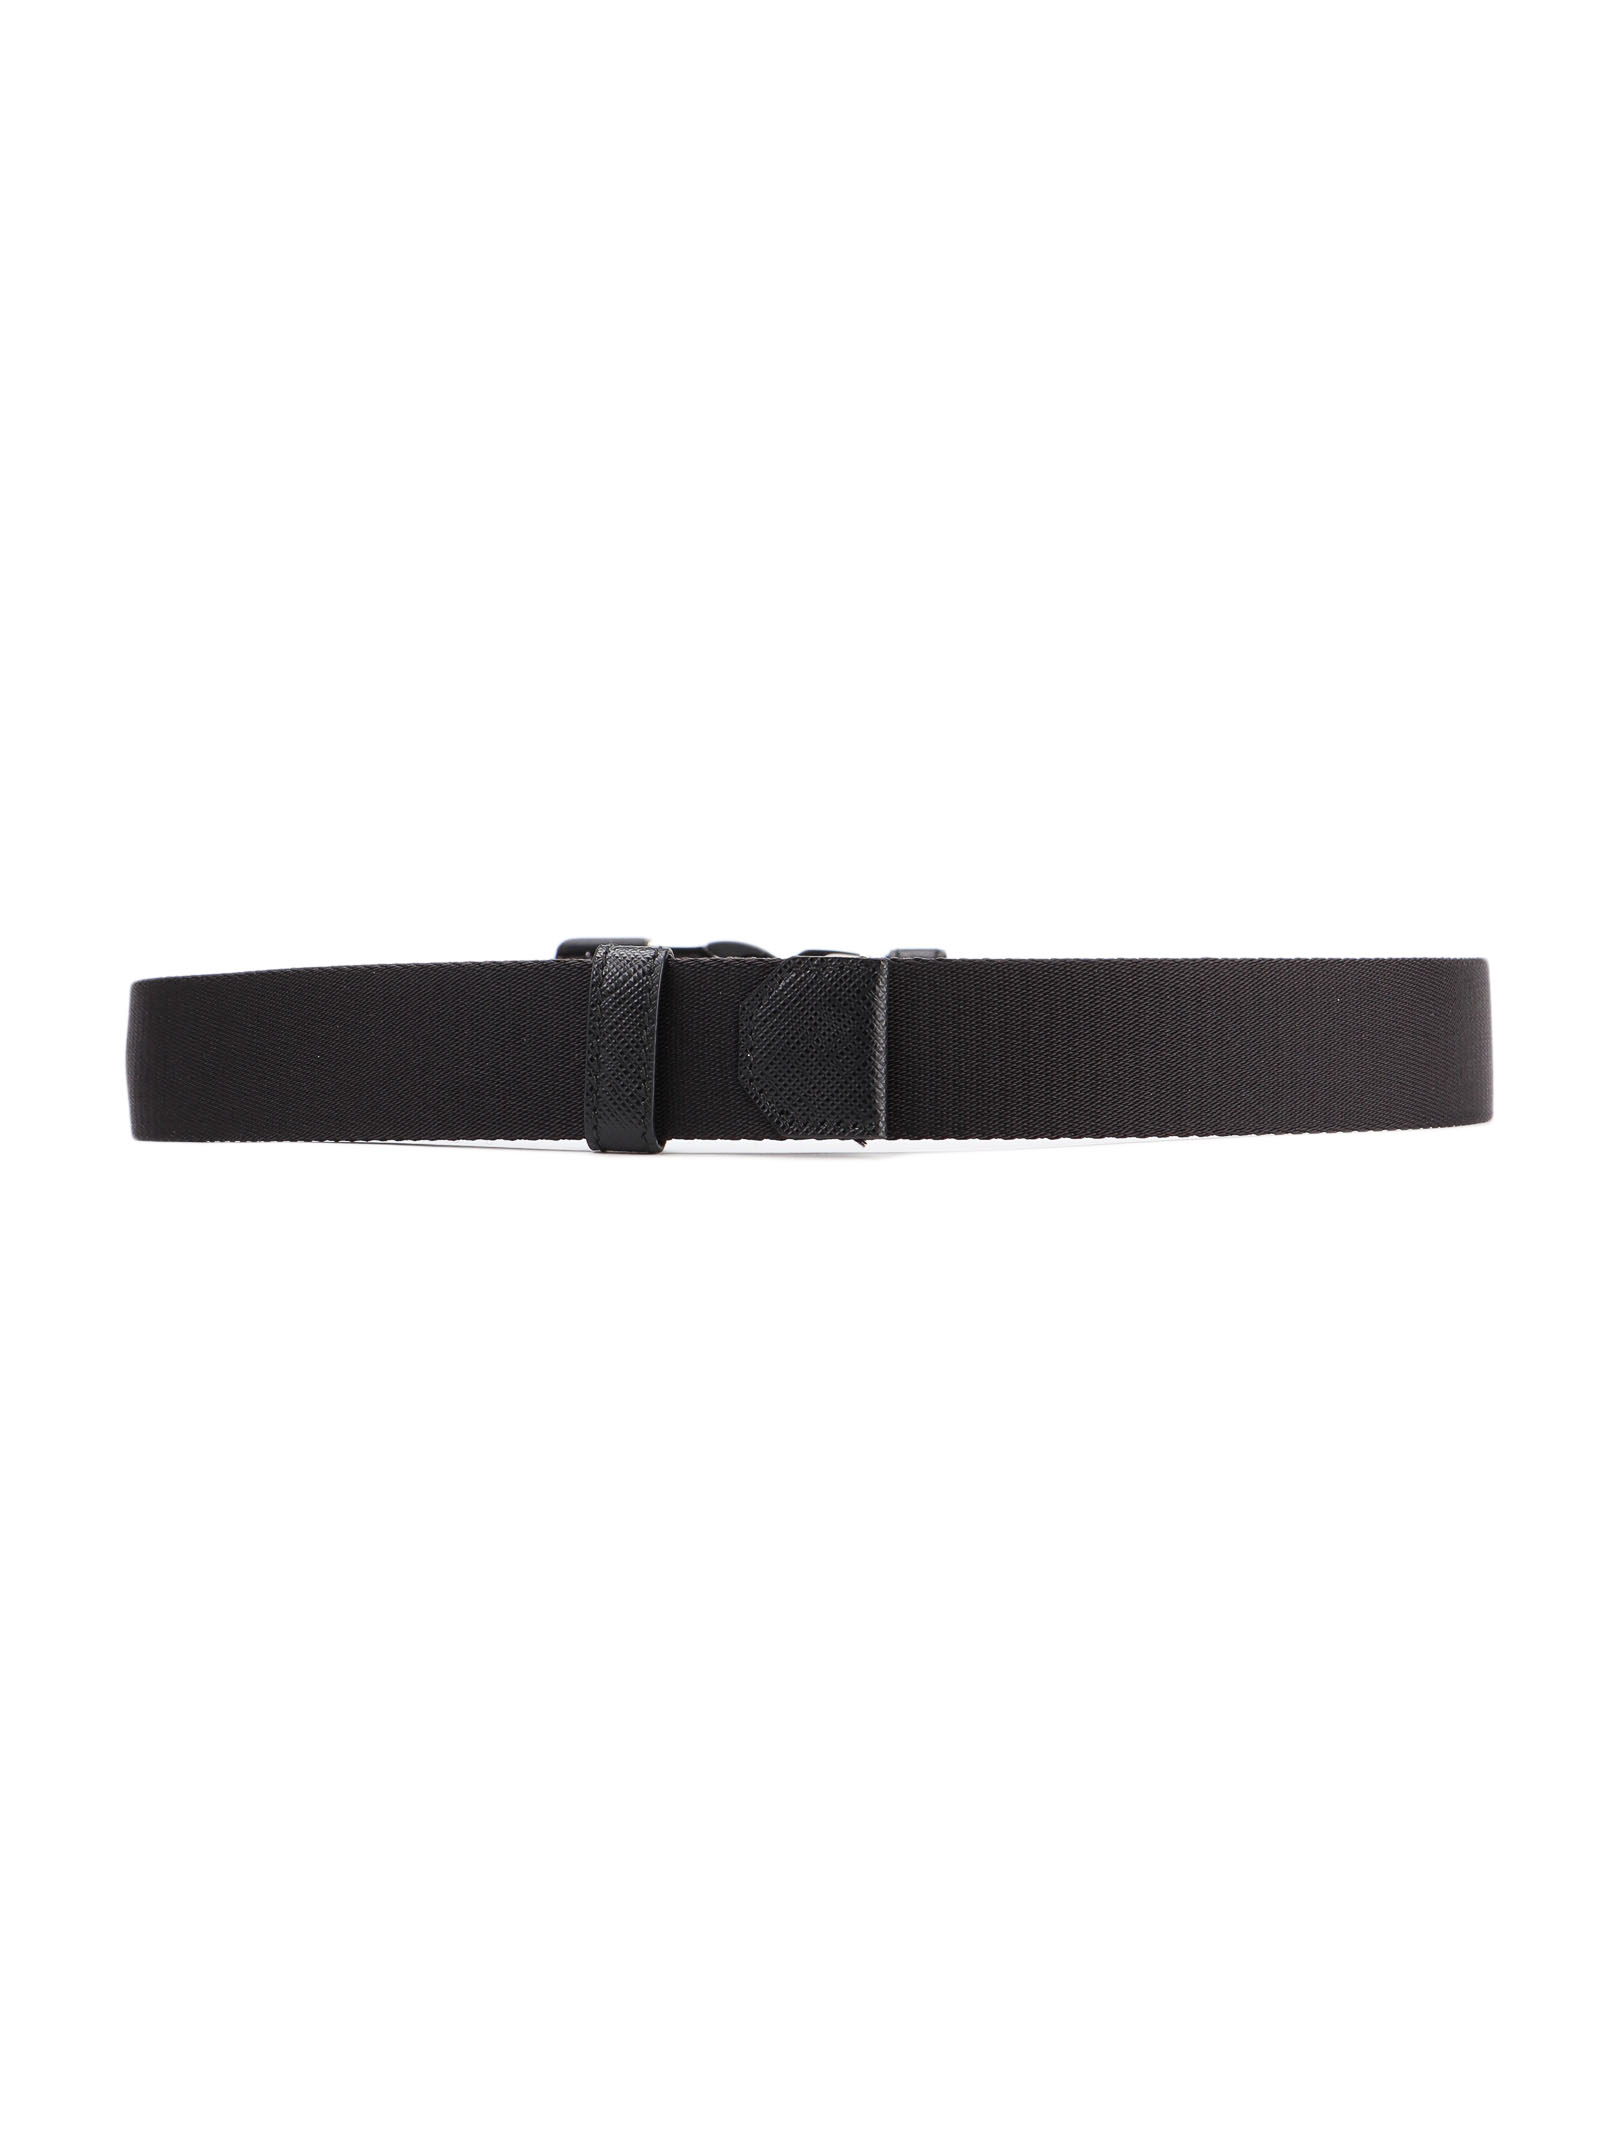 Picture of Prada | Belt Nastro Nylon